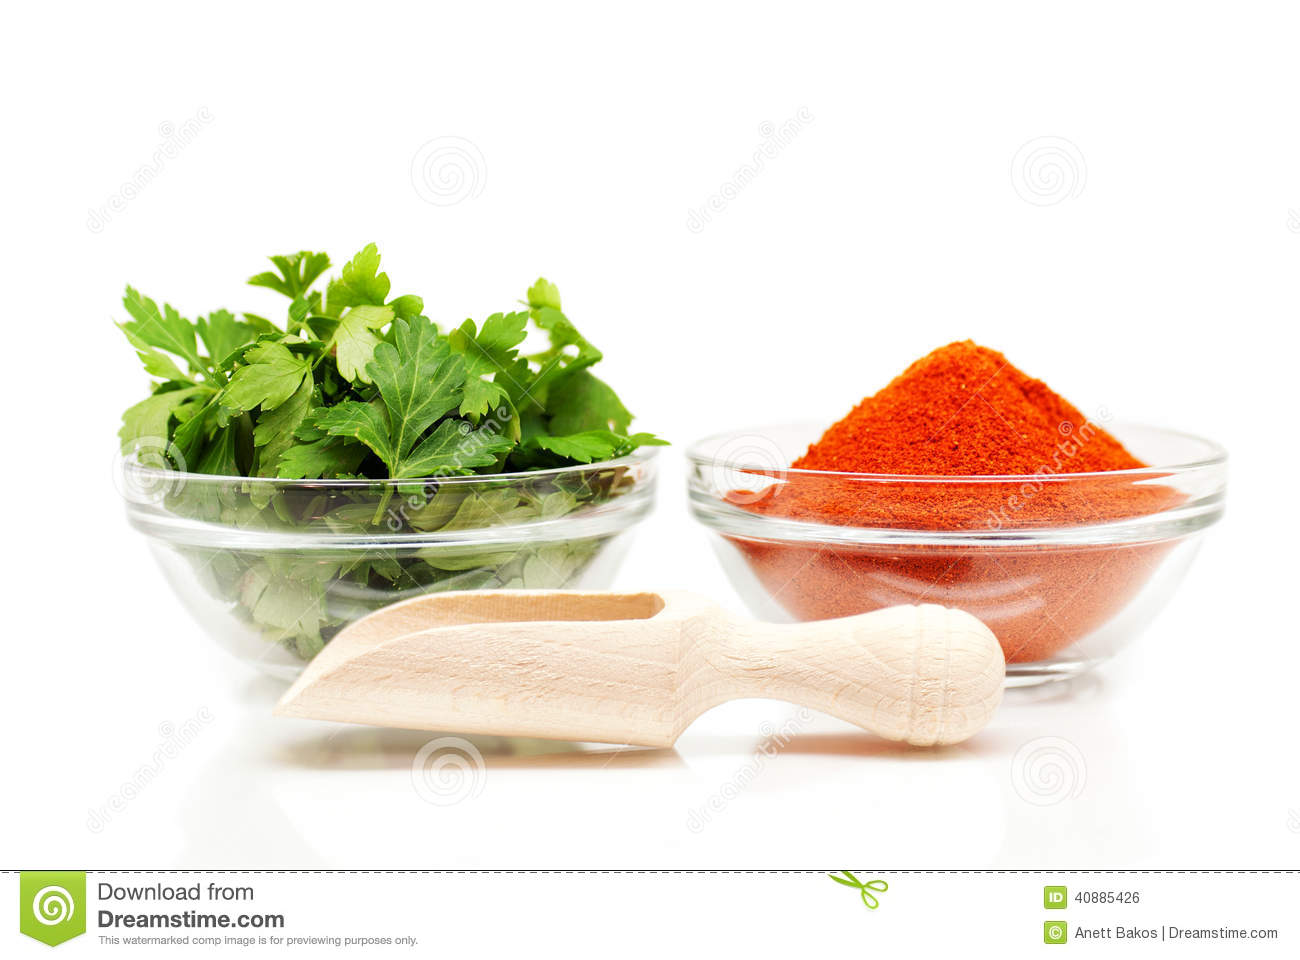 Parsley and red ground pepper and wooden spoon